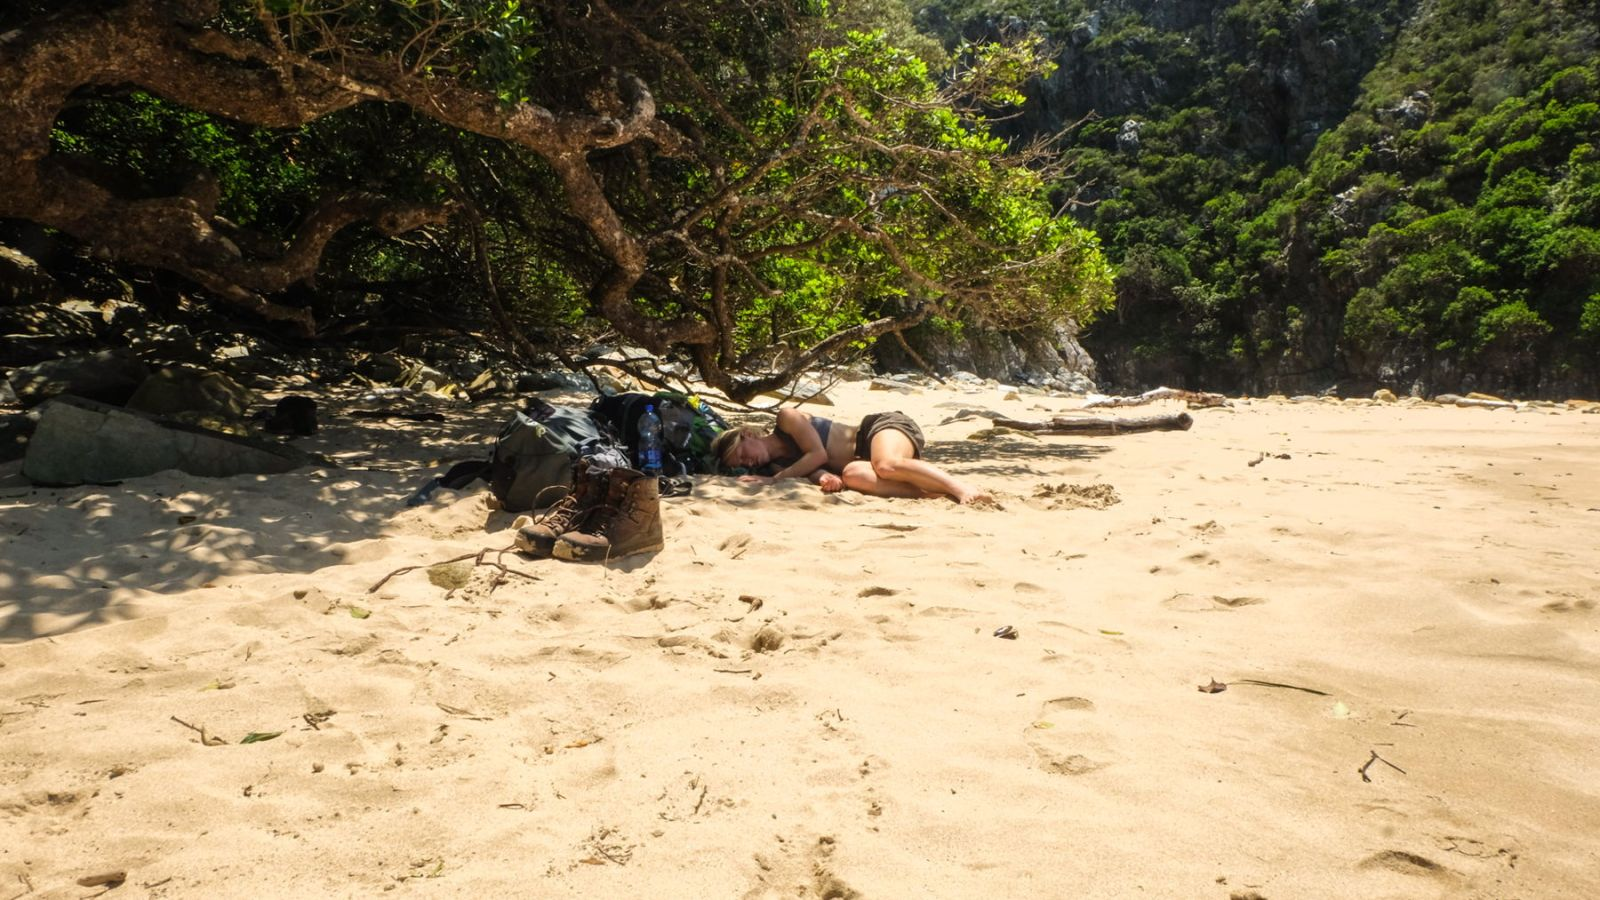 this is a photo of a hiker sleeping on a beach along the otter trail